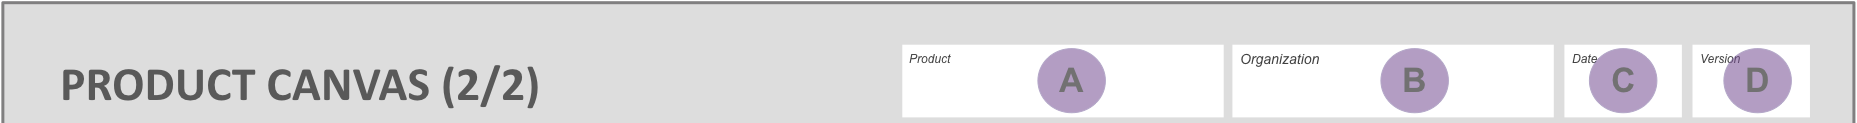 Product Canvas Header Callout